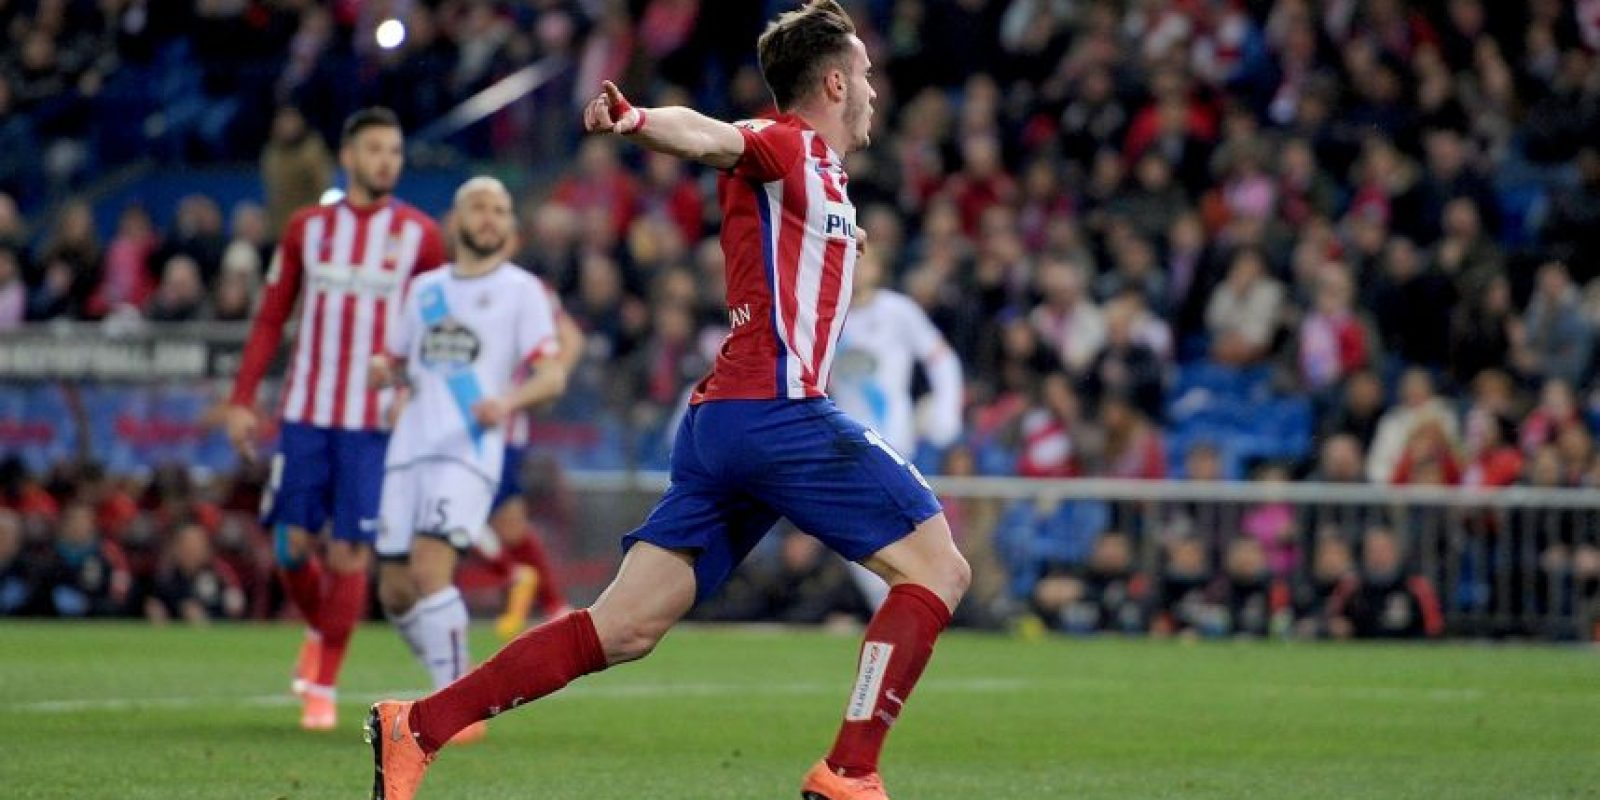 Contra Atlético de Madrid Foto: Getty Images